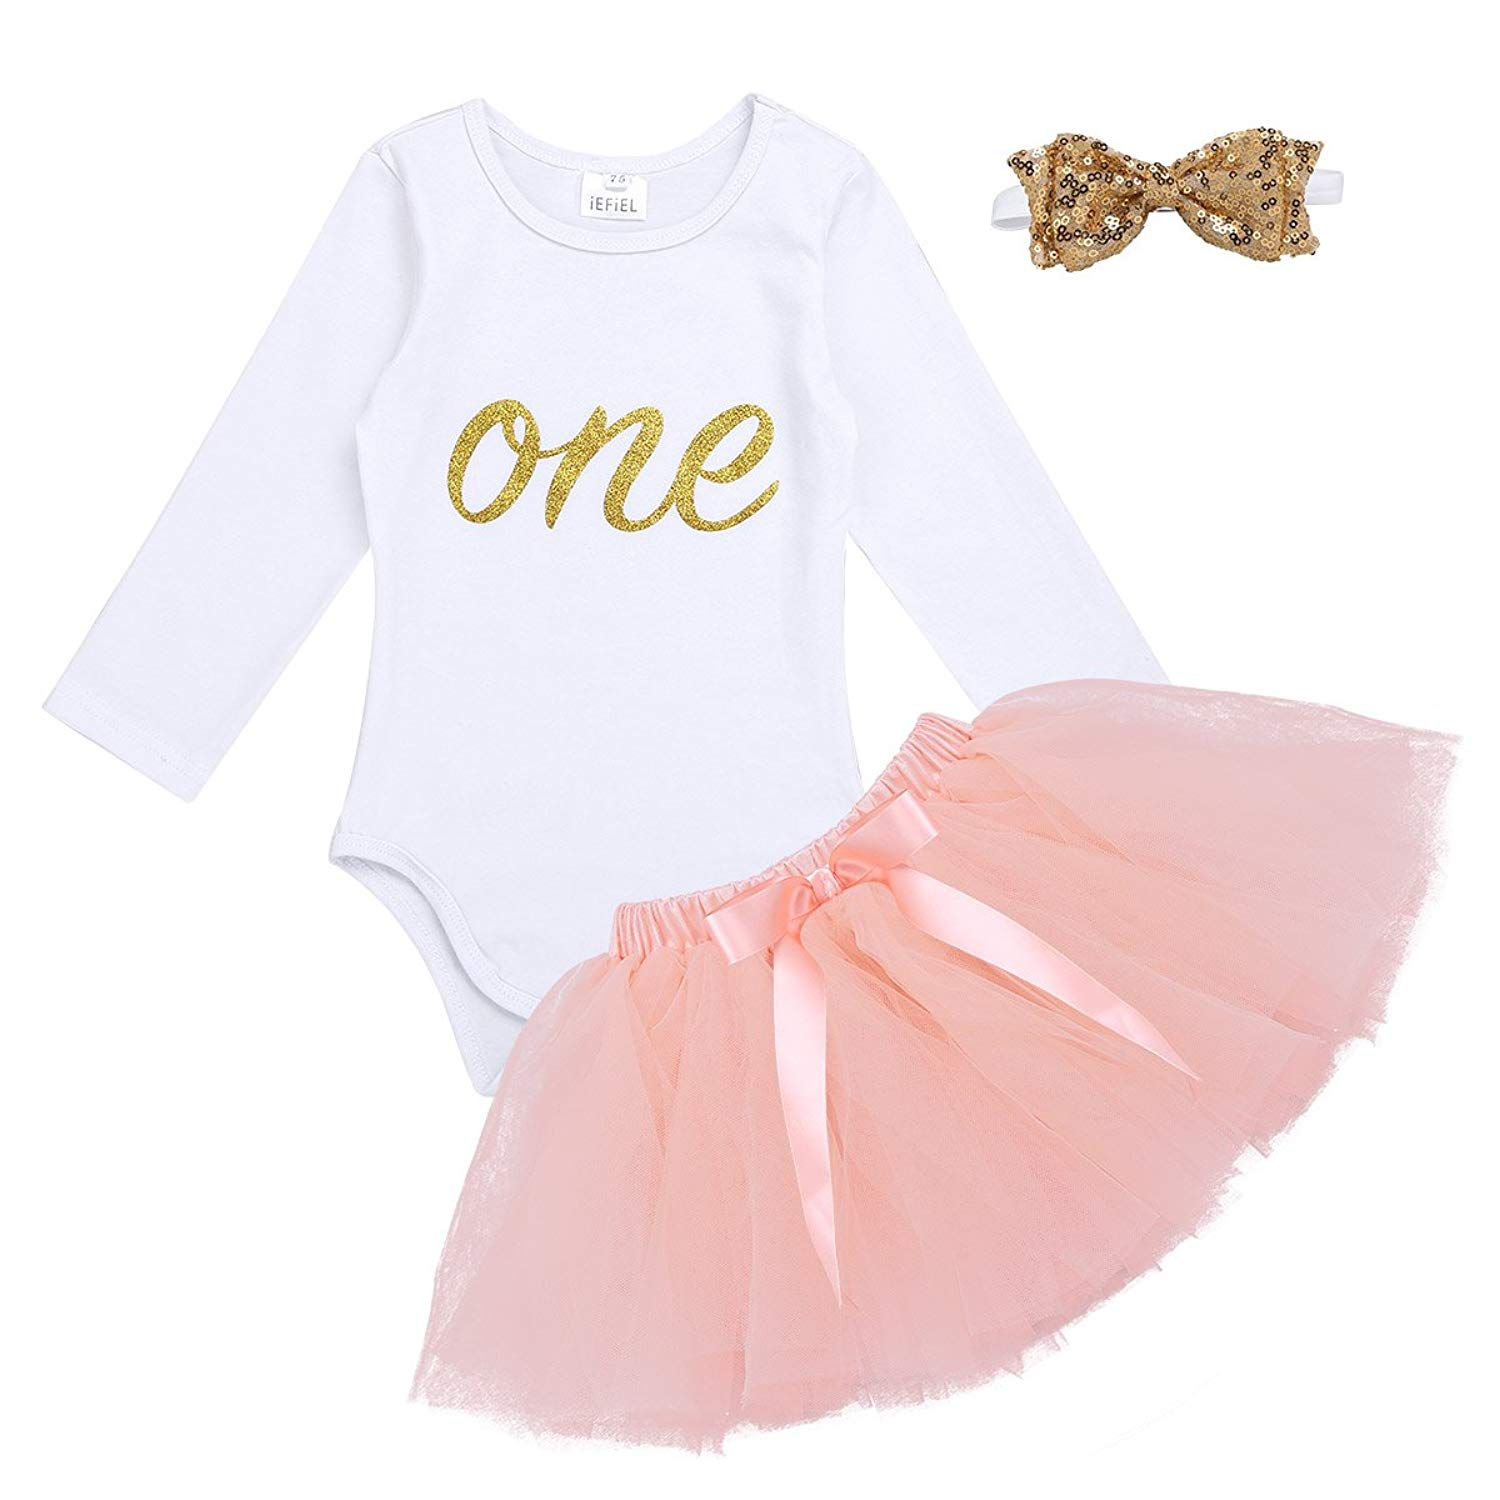 ed5bed7c70ea Get Quotations · Freebily Baby Girls First 1st Birthday Cake Smash Outfits  Tutu Skirt+Romper+Headband